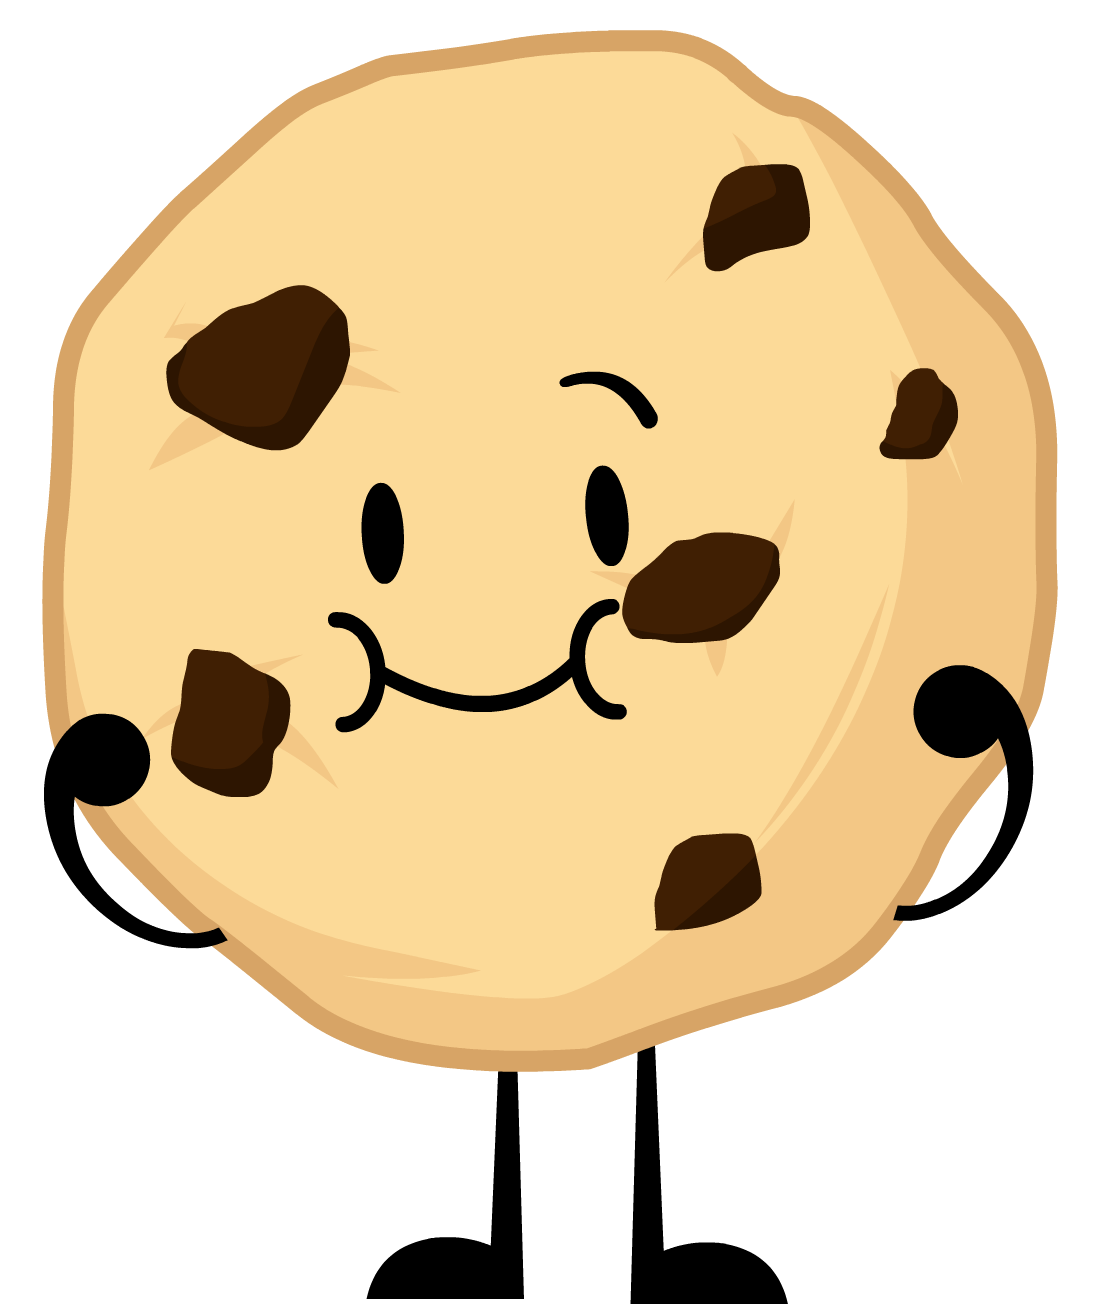 Cookie (Inanimate Insanity)